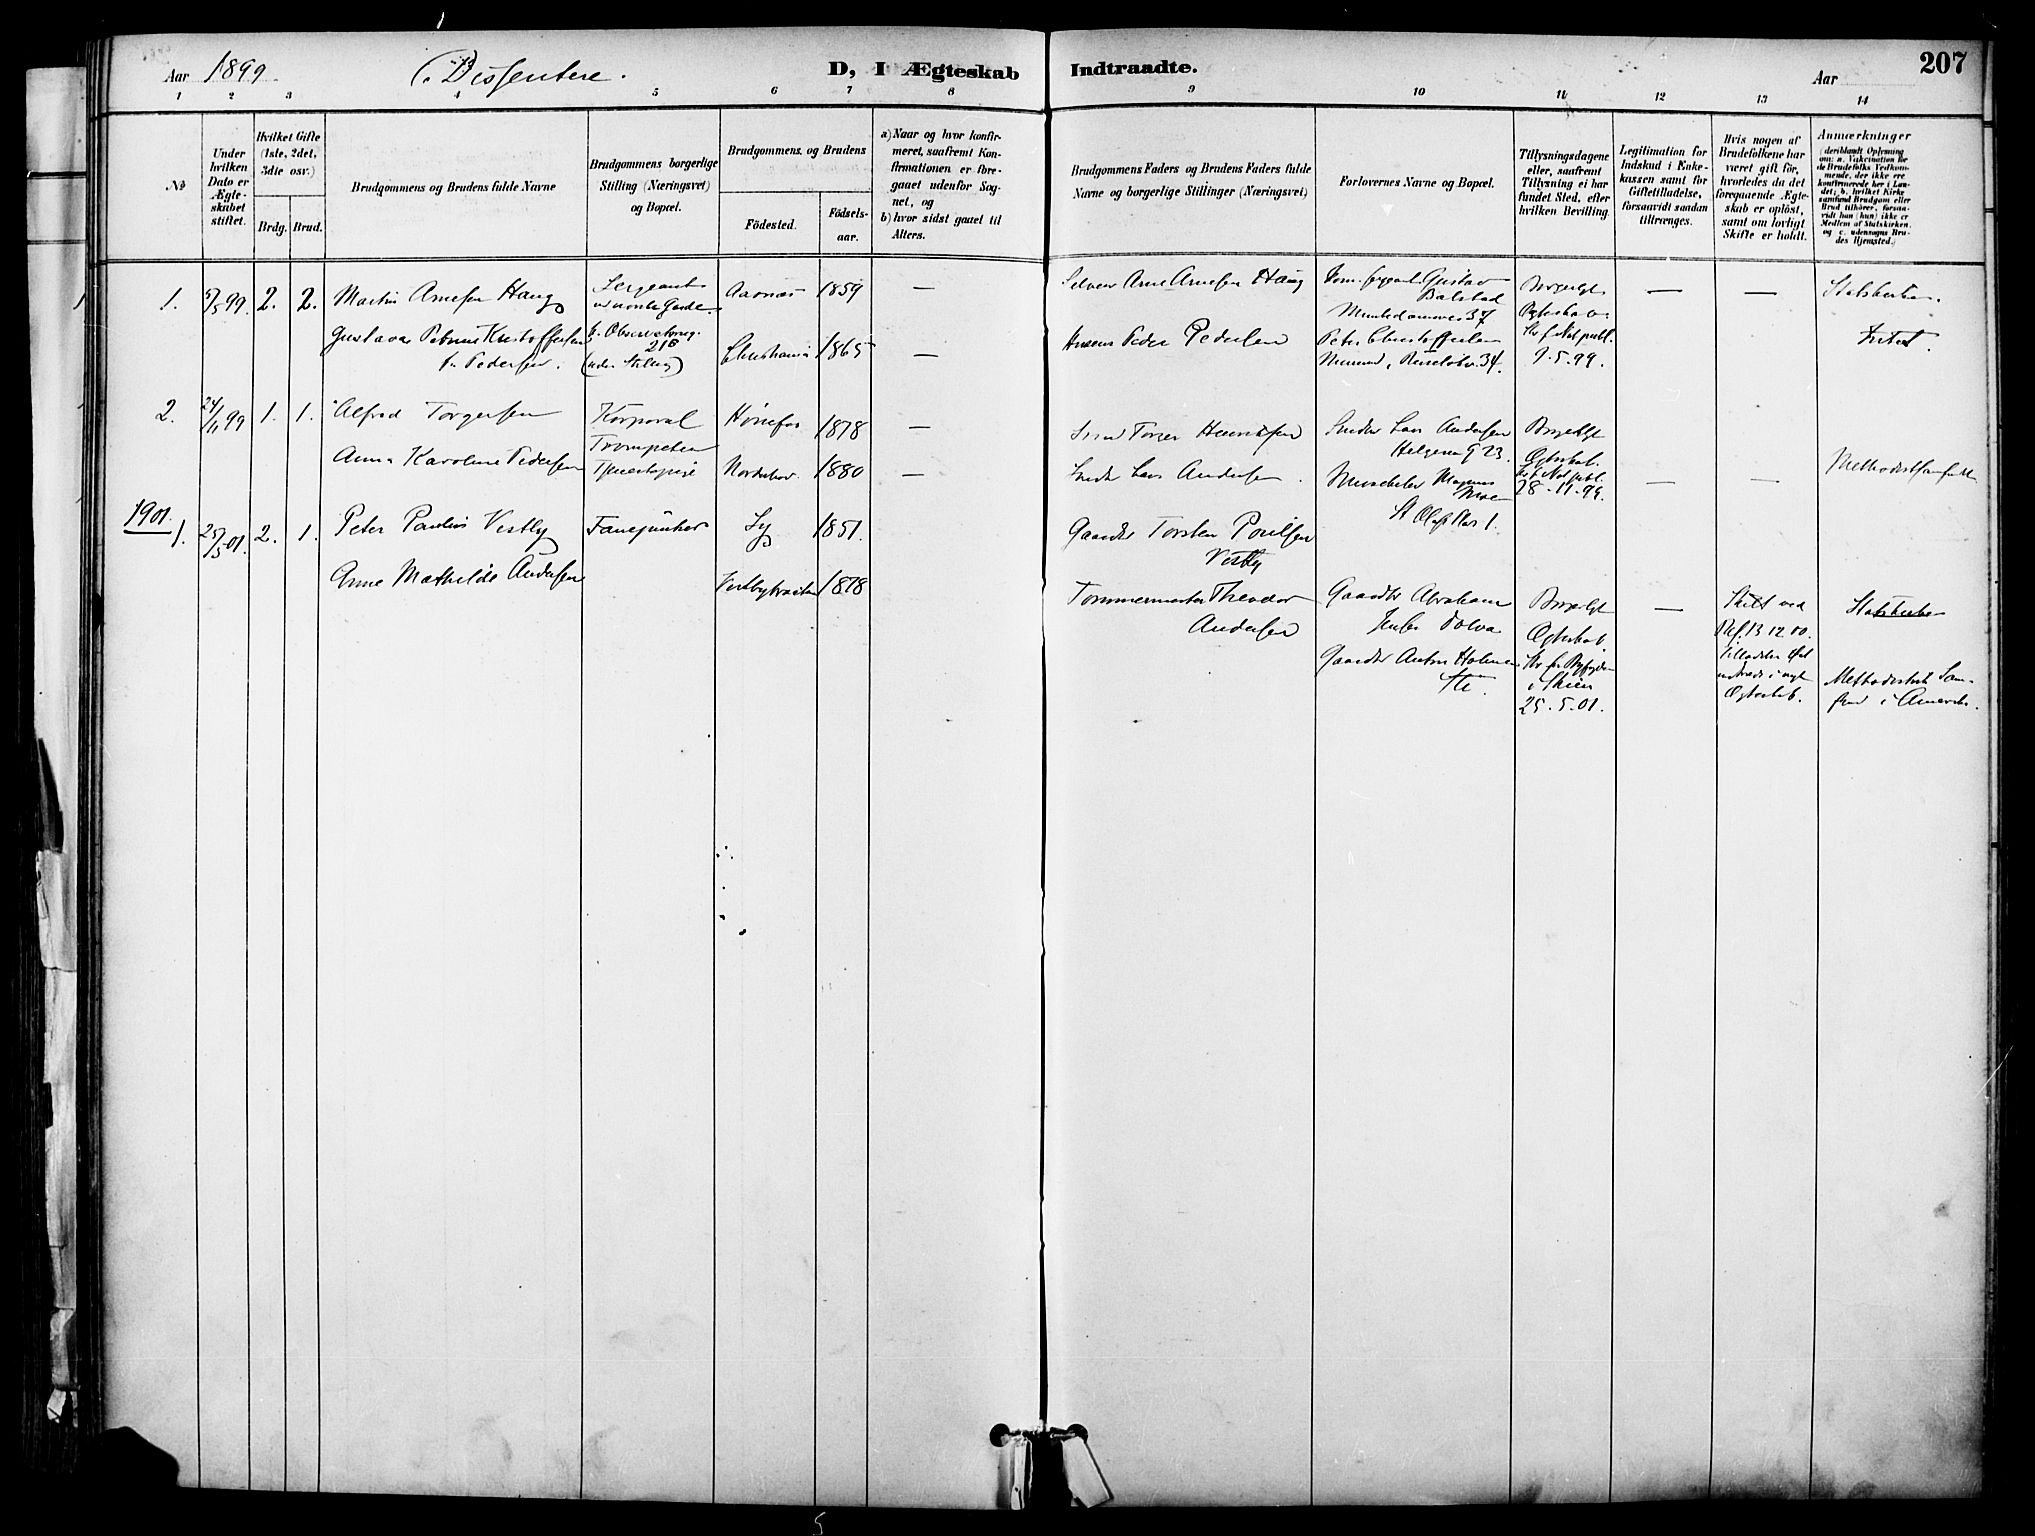 SAO, Garnisonsmenigheten Kirkebøker, F/Fa/L0013: Parish register (official) no. 13, 1894-1904, p. 207